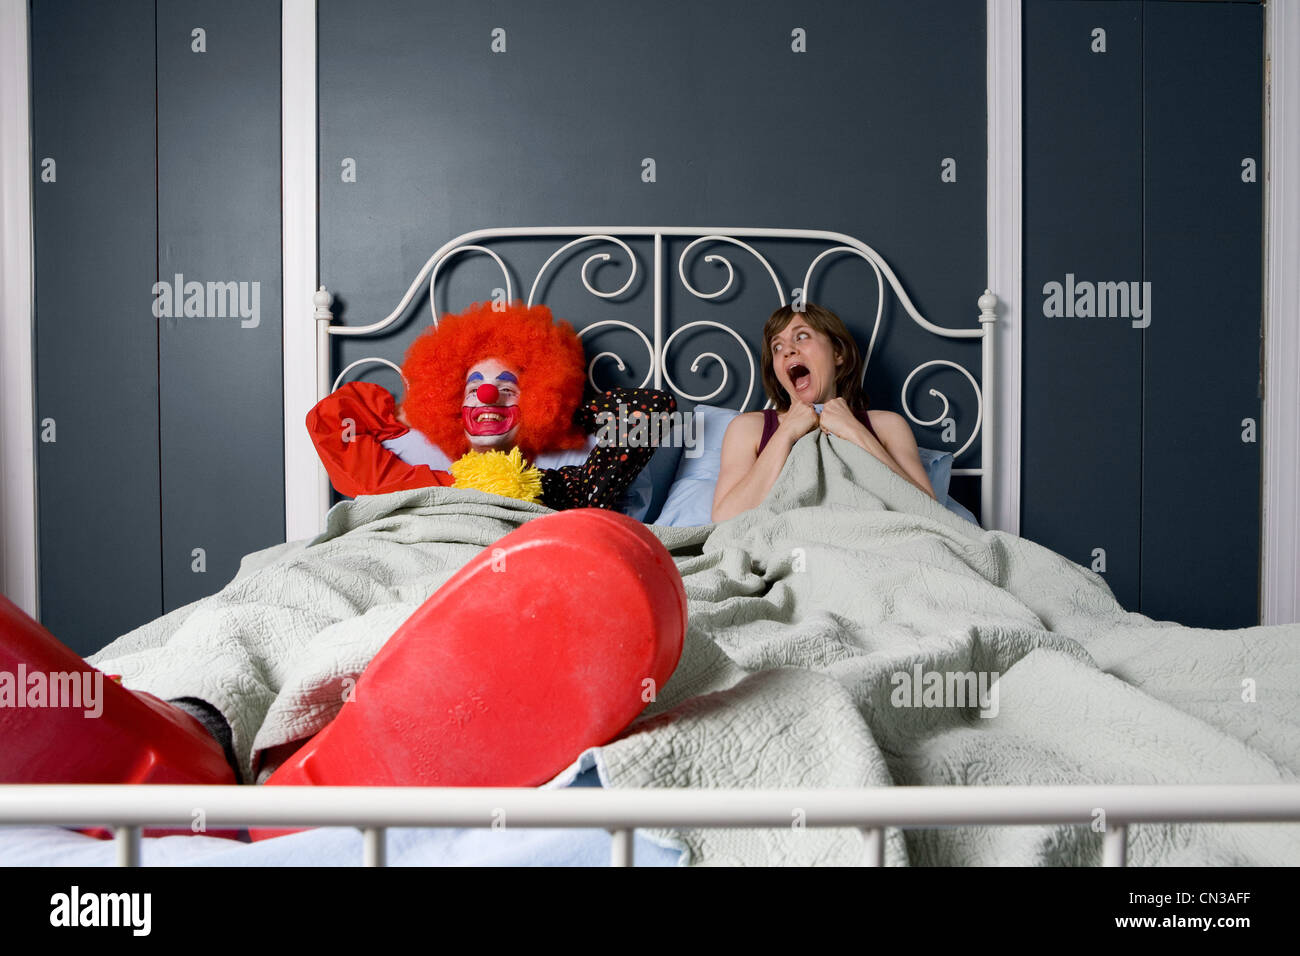 Woman screaming as she realises she is in bed with a clown - Stock Image